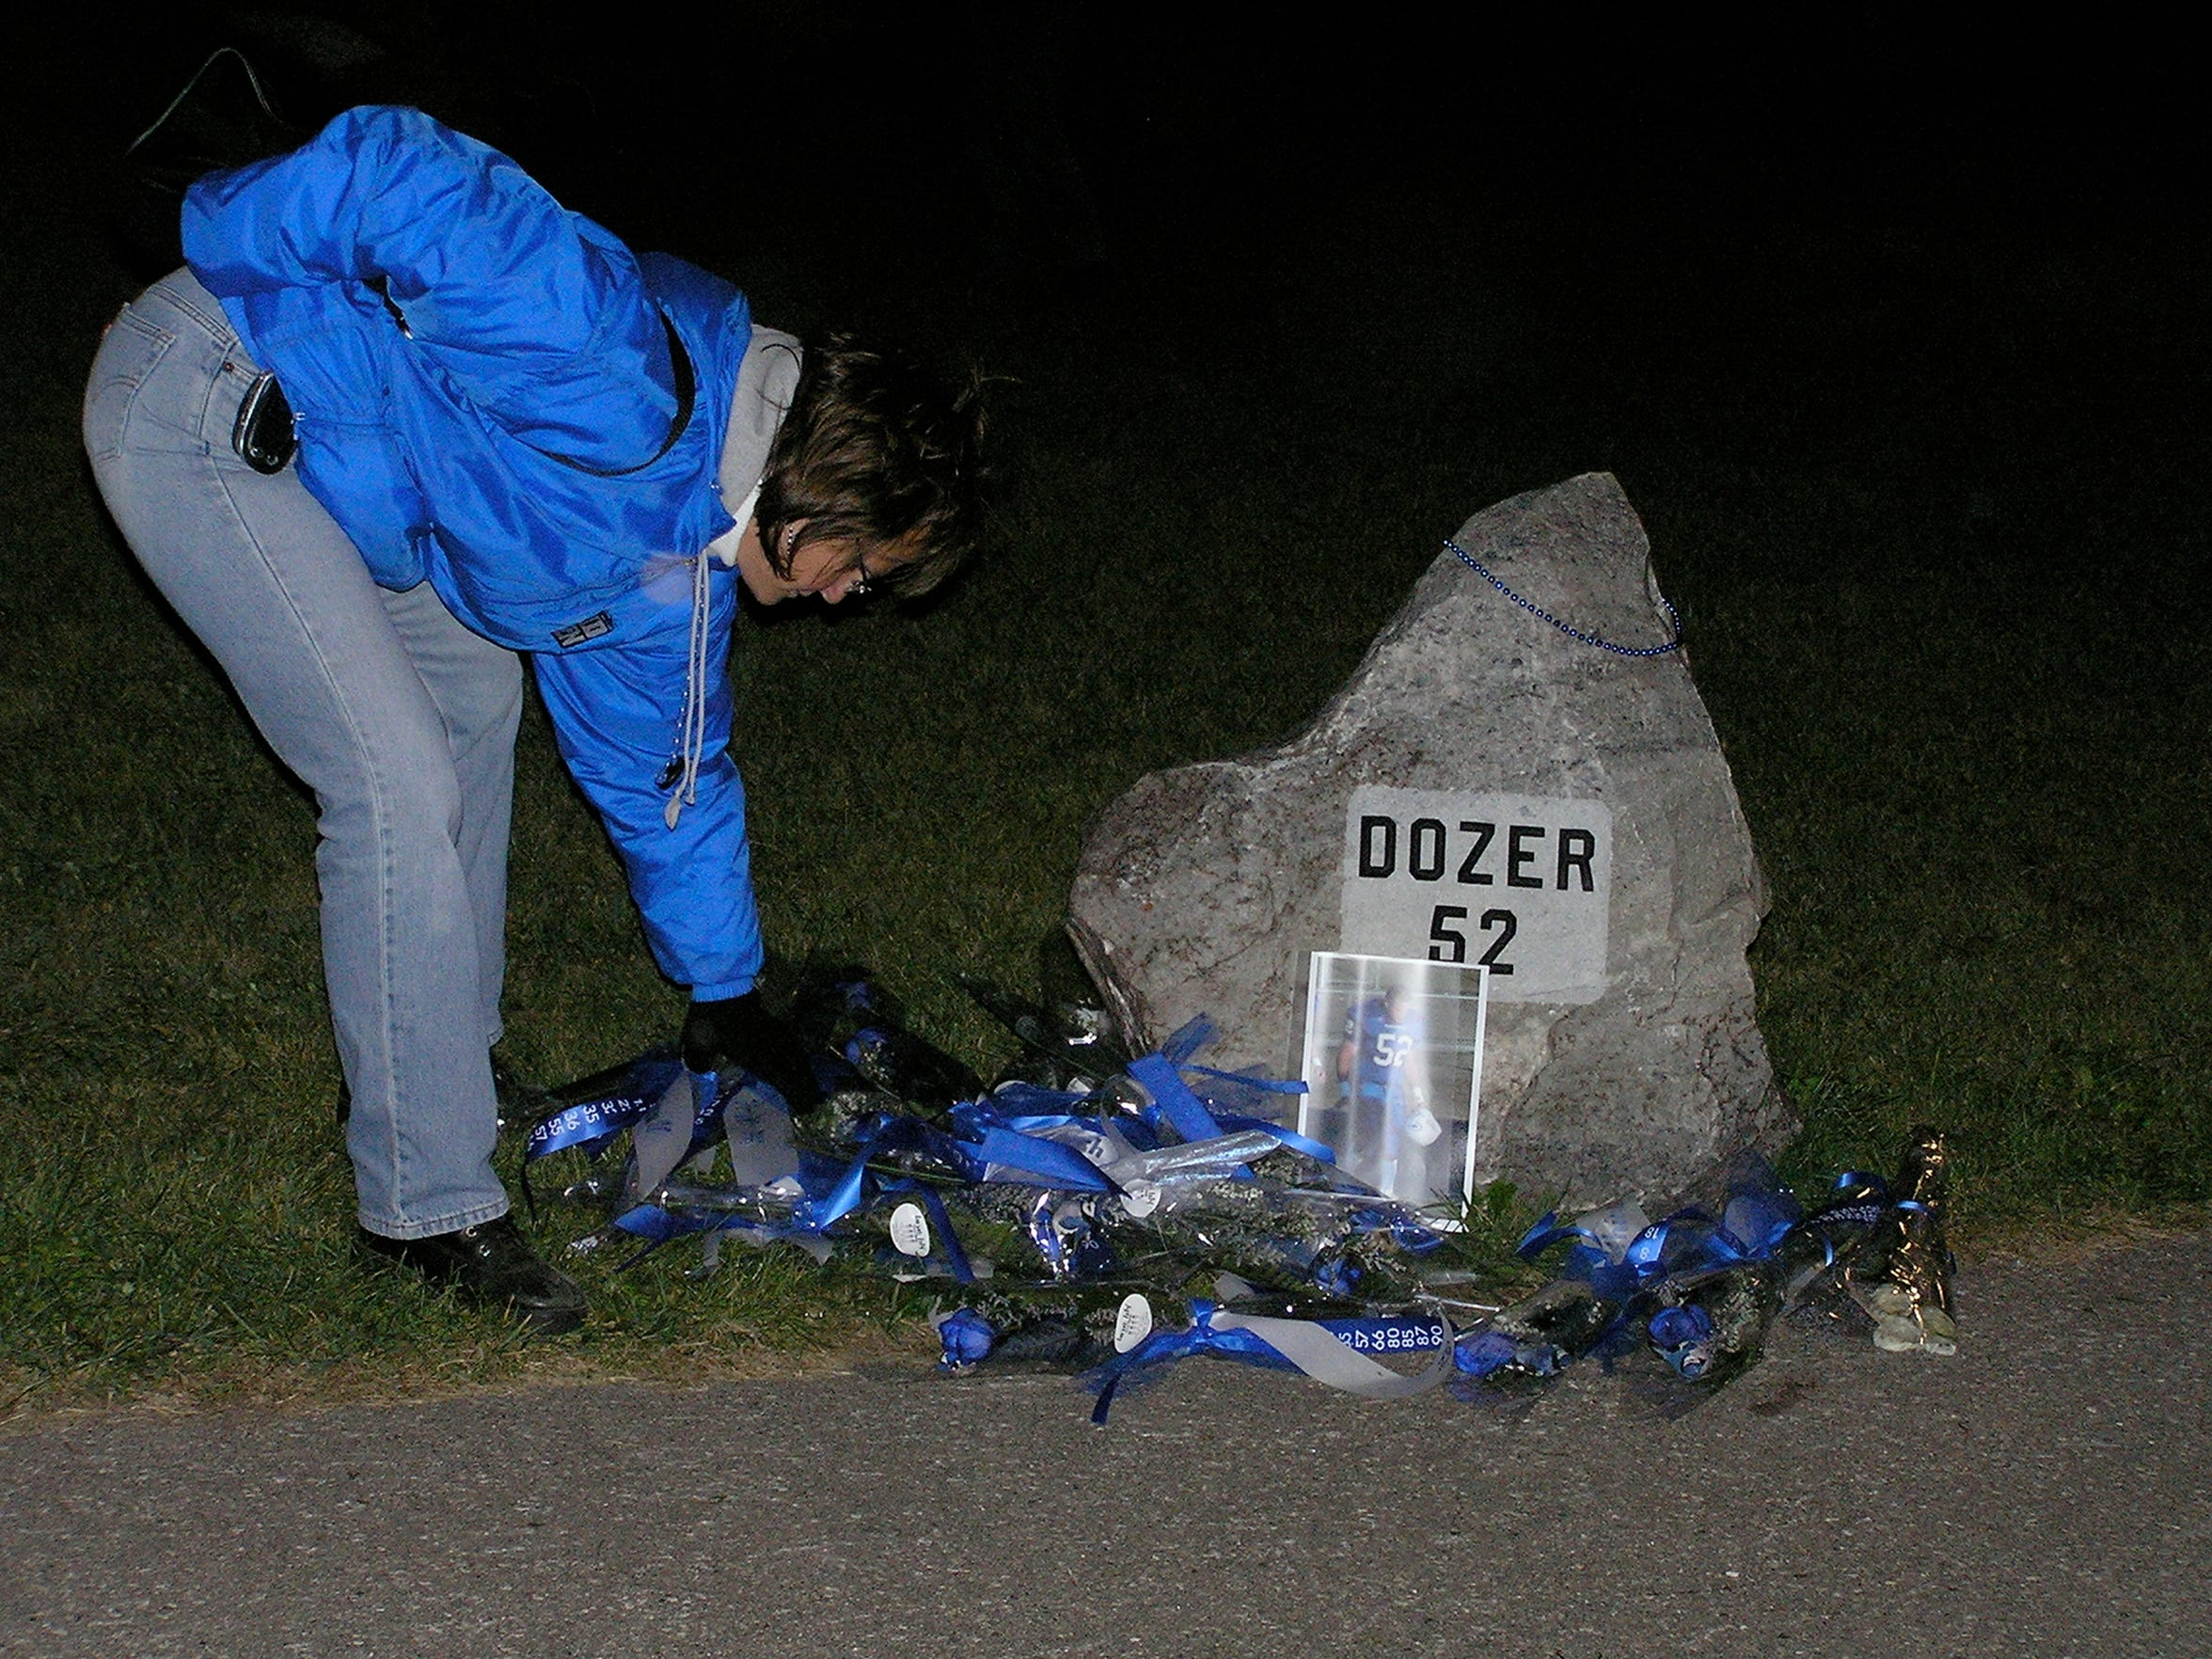 At a 2004 Cambridge High School football game. flowers are placed alongside a rock dedicated to Dustin Zuelsdorf near the field.